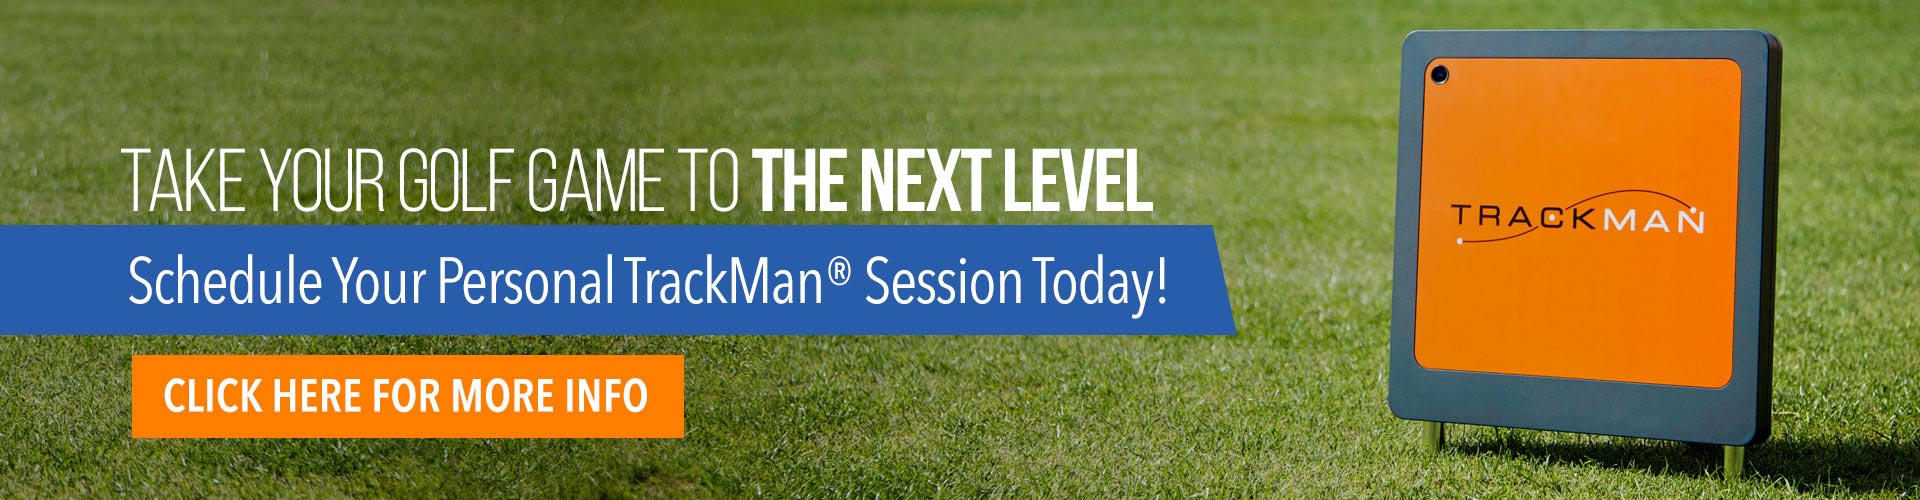 Take your golf game to the next level. Schedule your TrackMan session today!